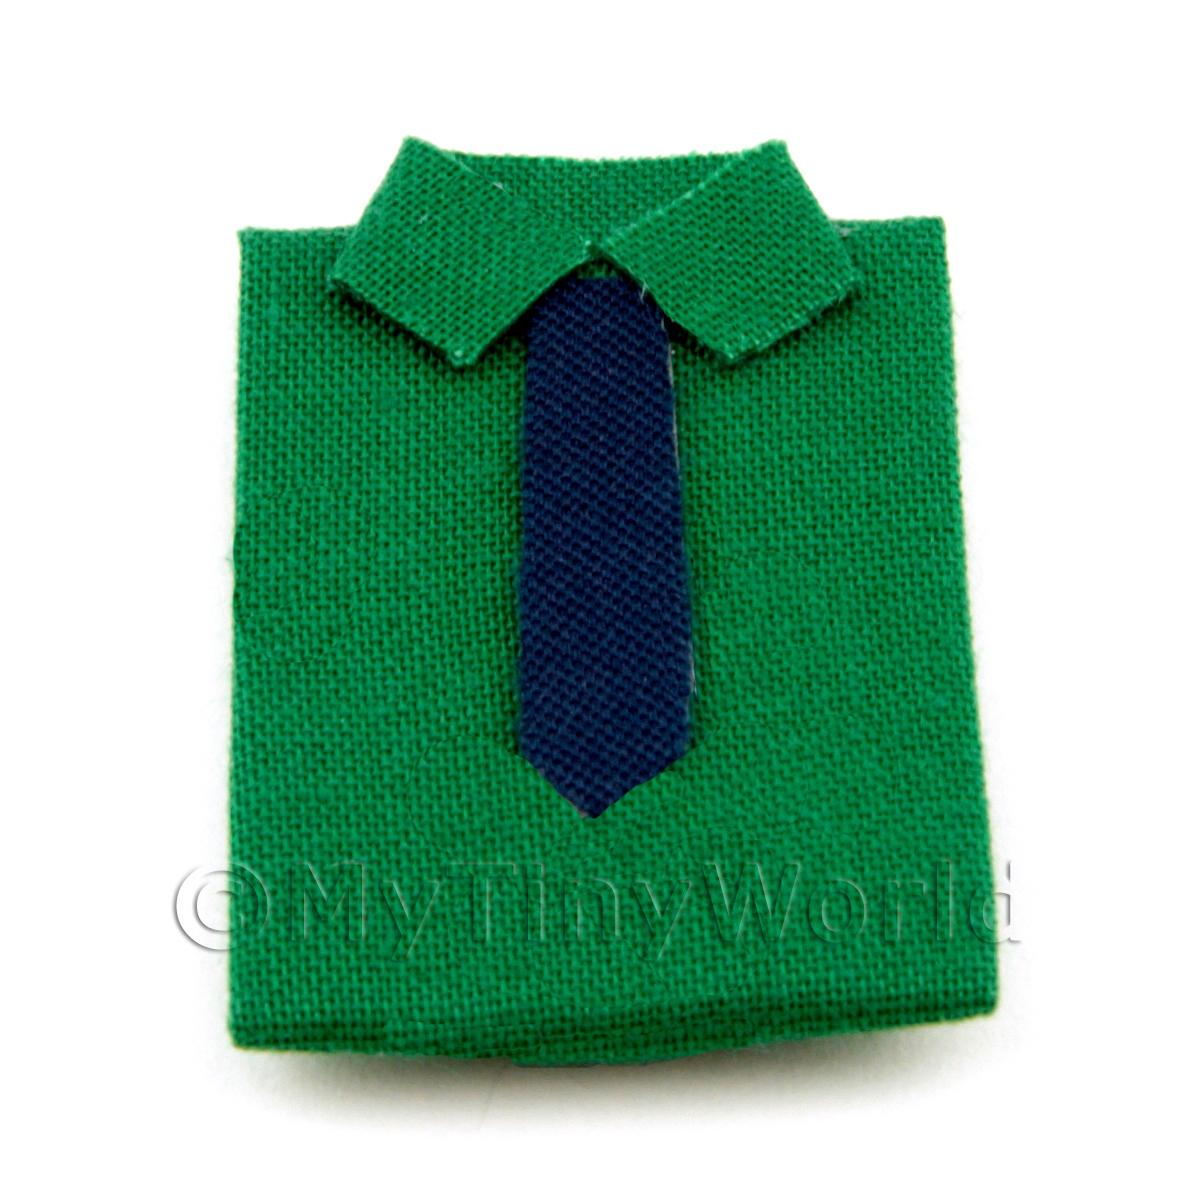 Dolls House Miniature Green Shirt With Tie